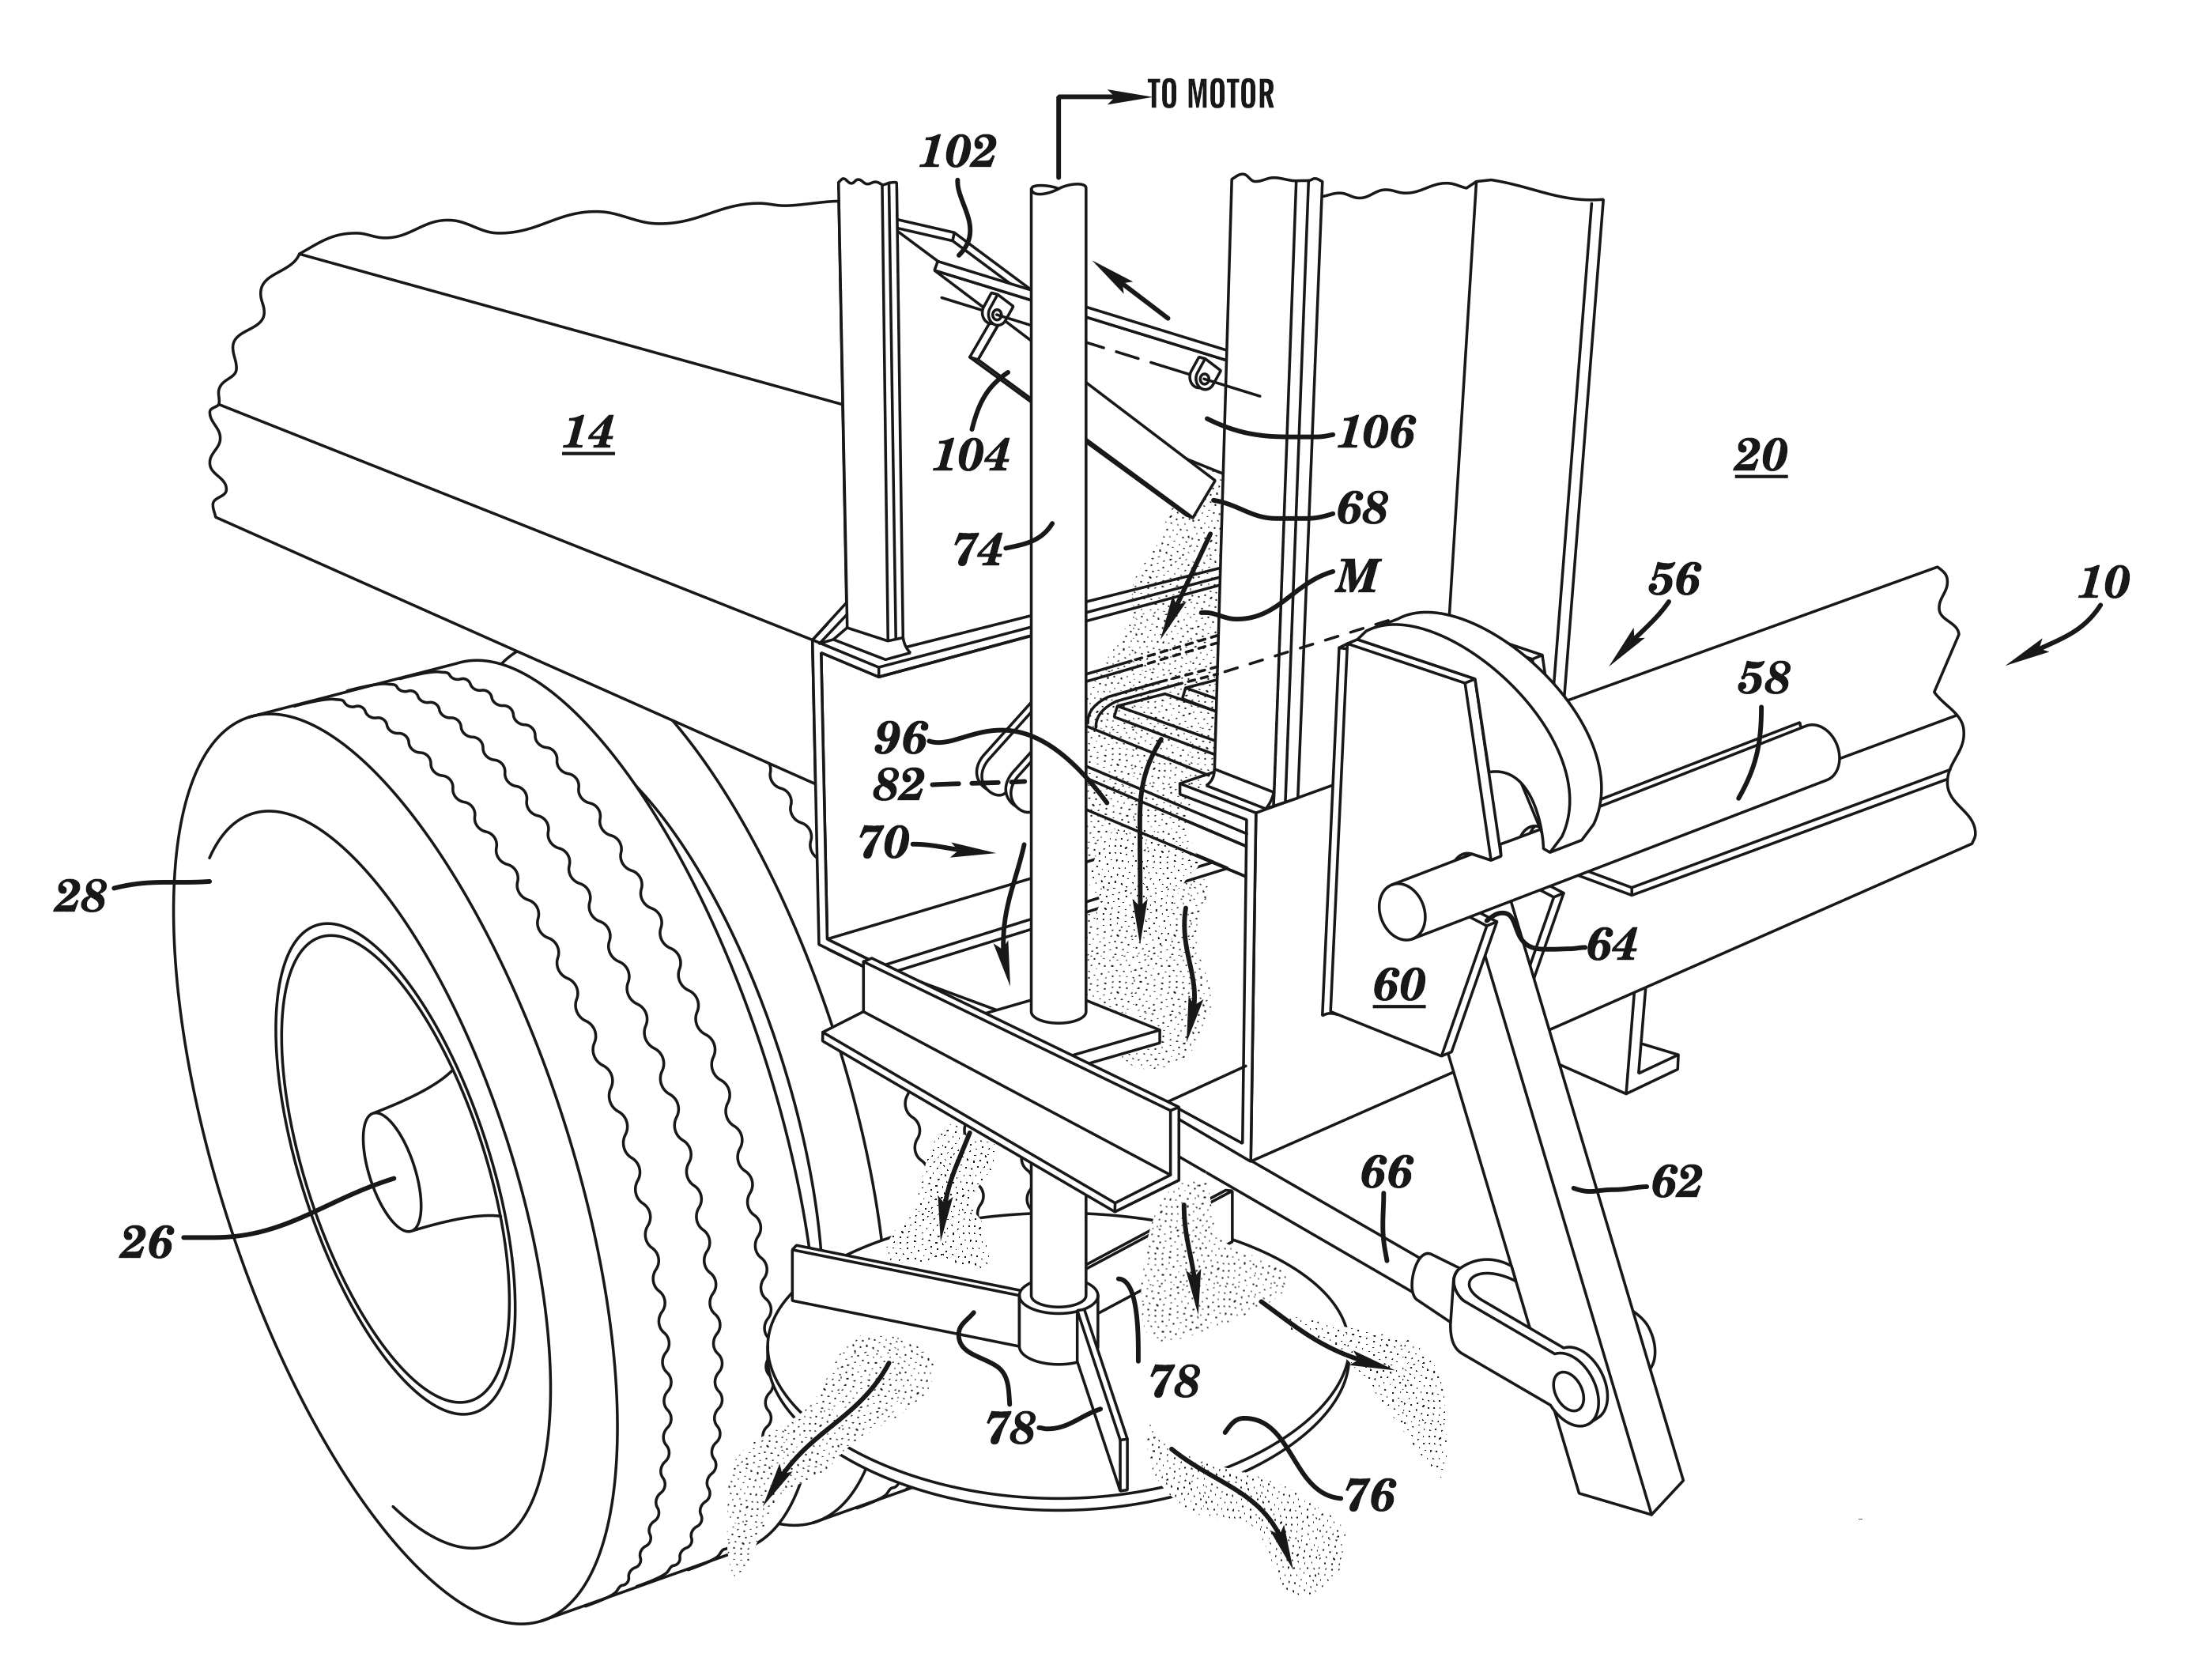 04_ptiserviceco_patent_drawing_mechanical.png